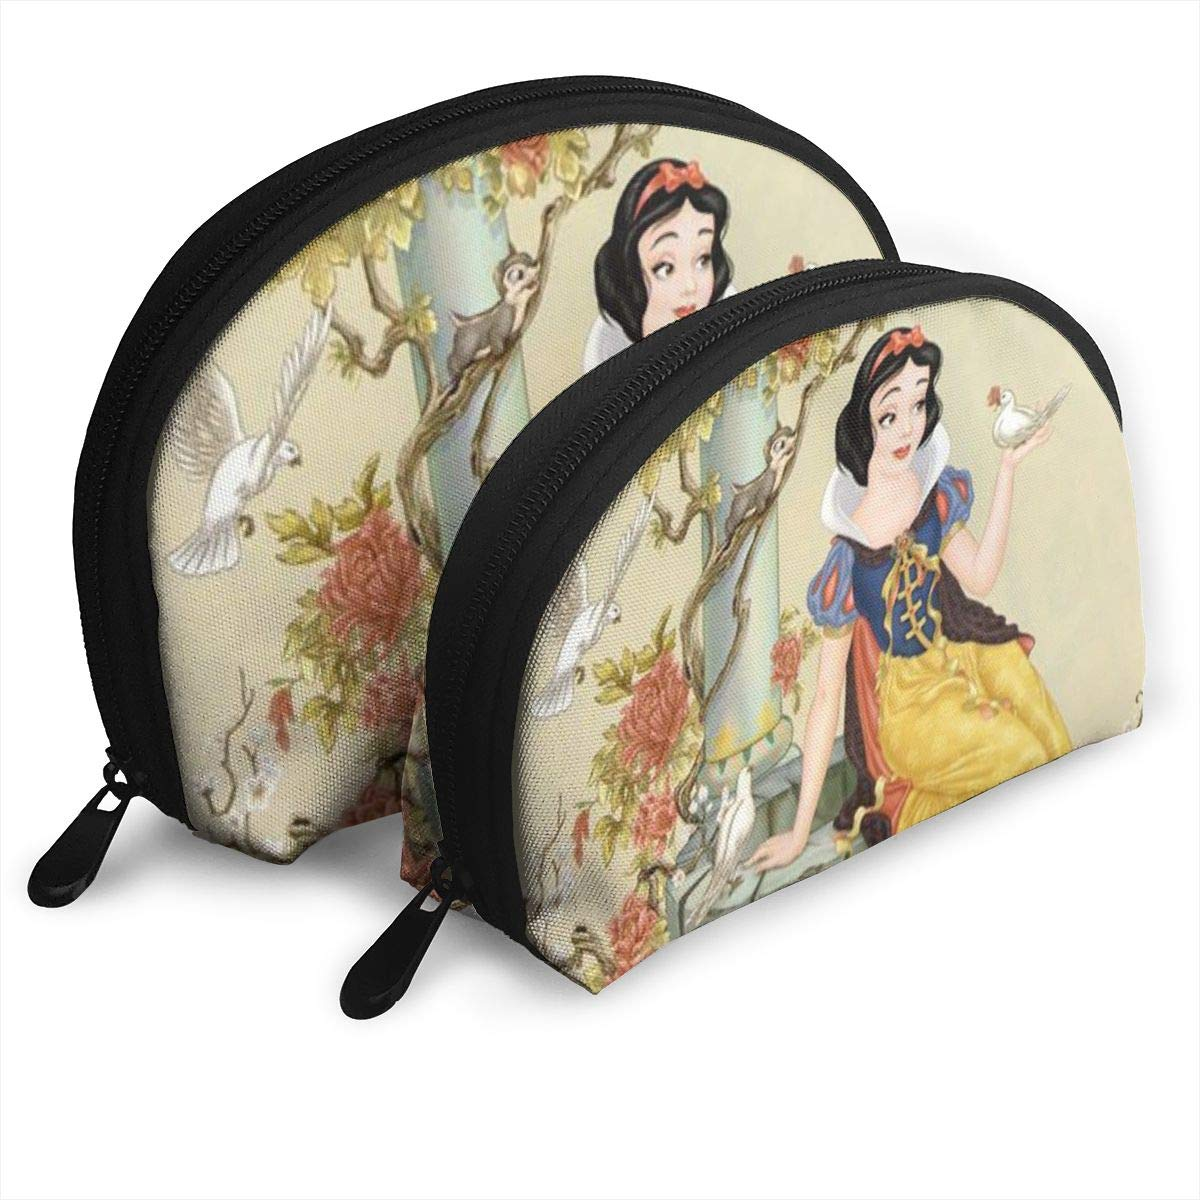 Snow White Makeup Bag Travel Bags Small Shell Bag Portable Toiletry Clutch Pouch 2Pcs